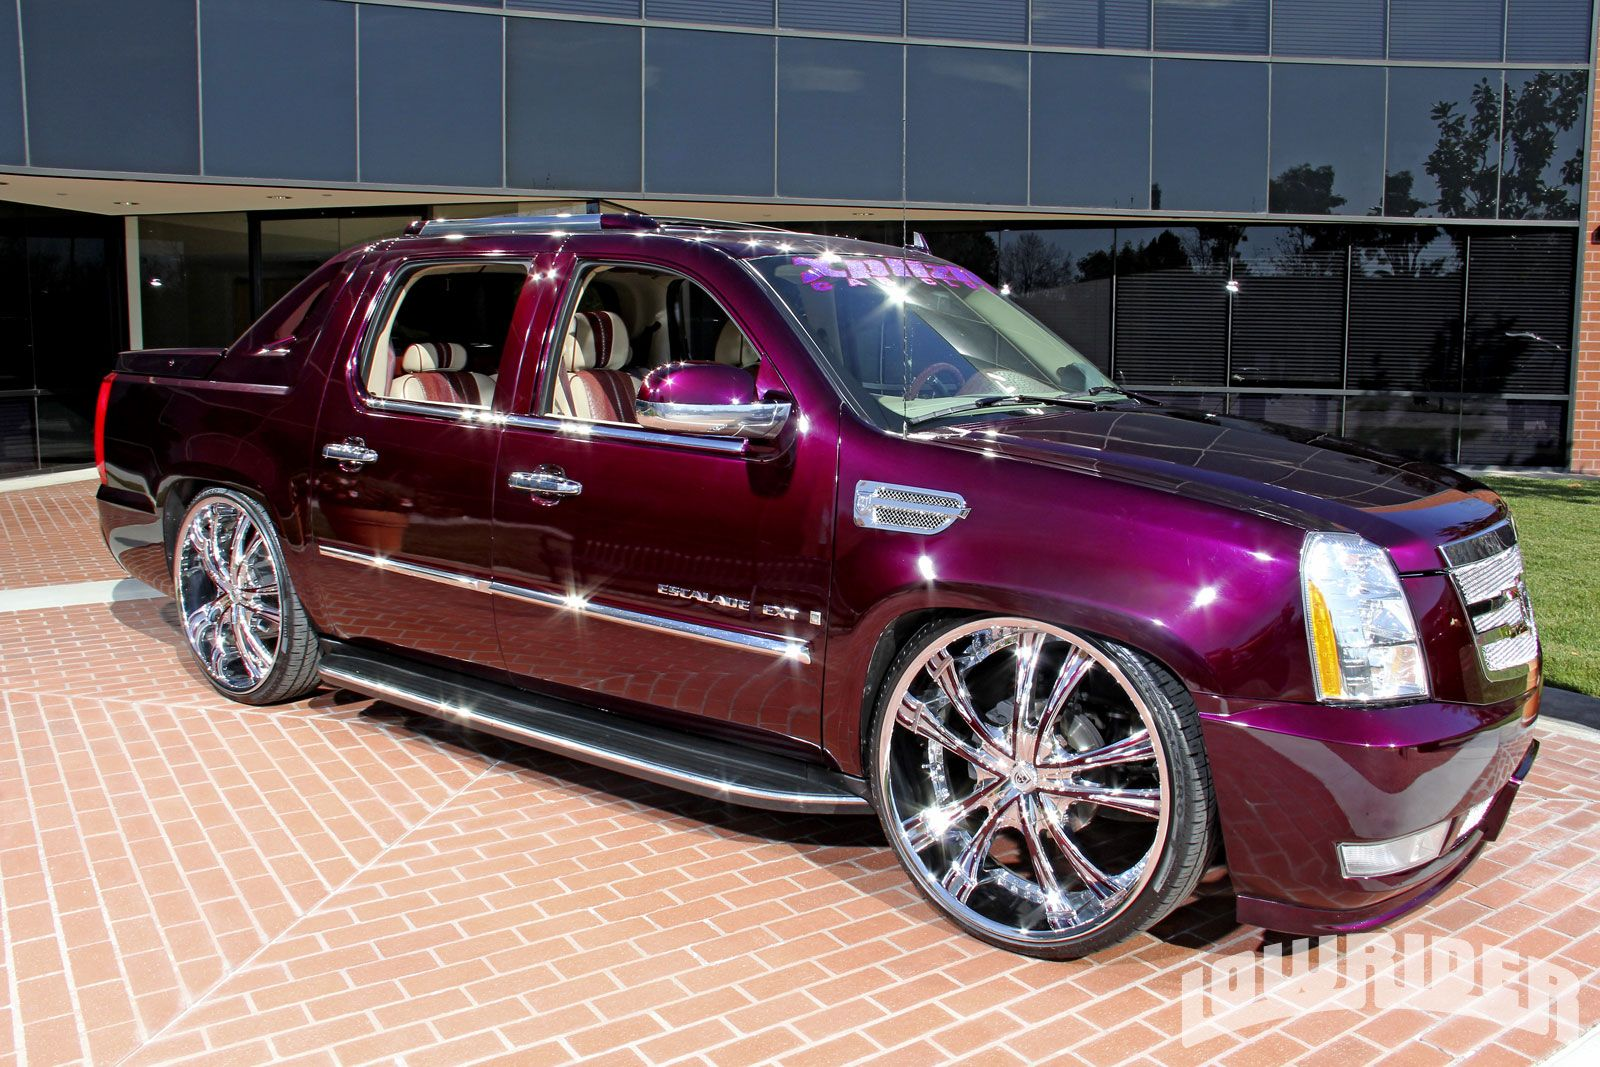 Pictures of the 2007 cadillac escalade ext google images cadillac escalade and cadillac